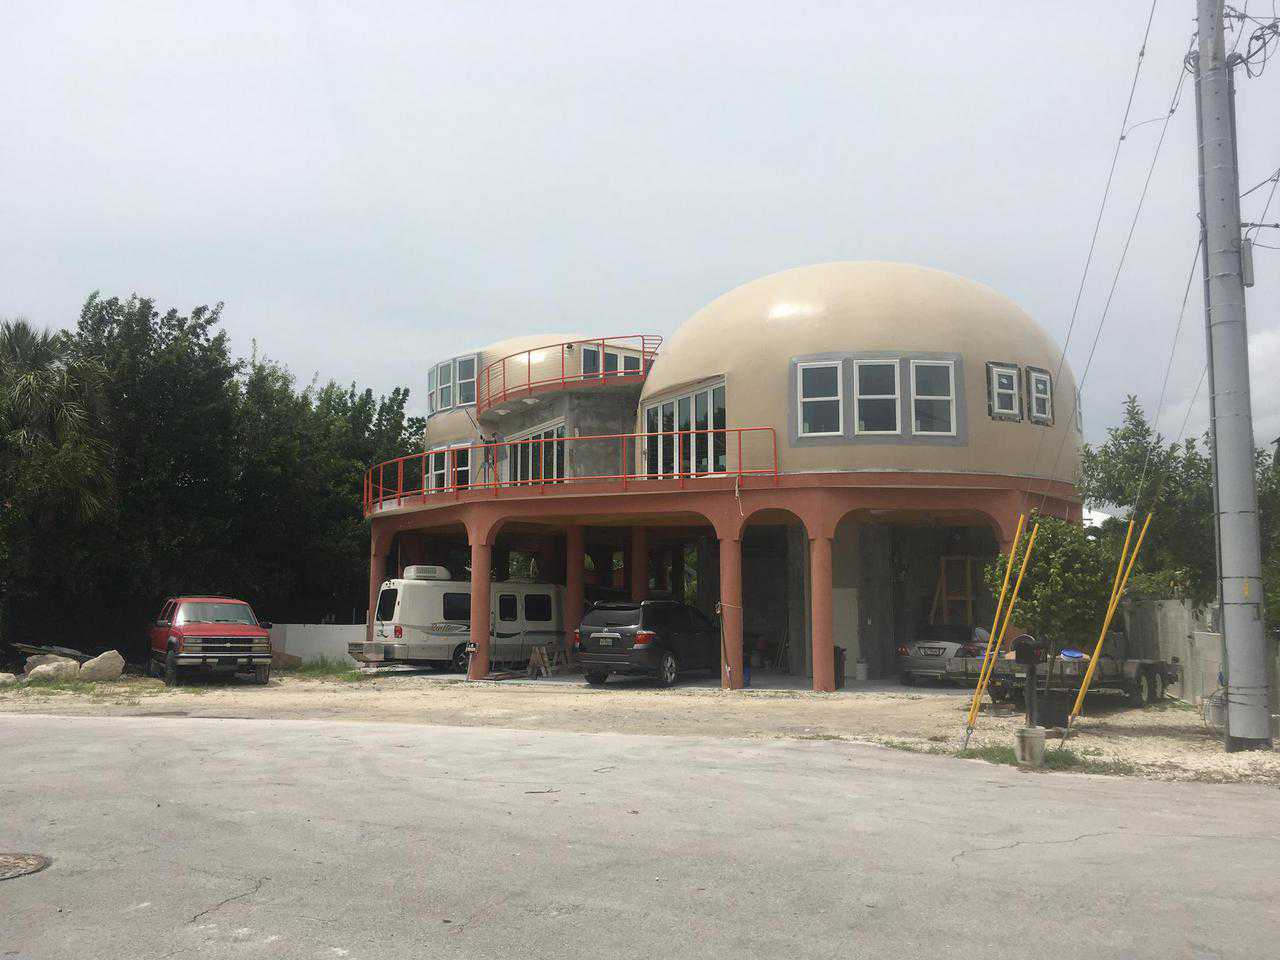 House Plans For Florida Monolithic Dome Survives Hurricane Irma Monolithic Dome